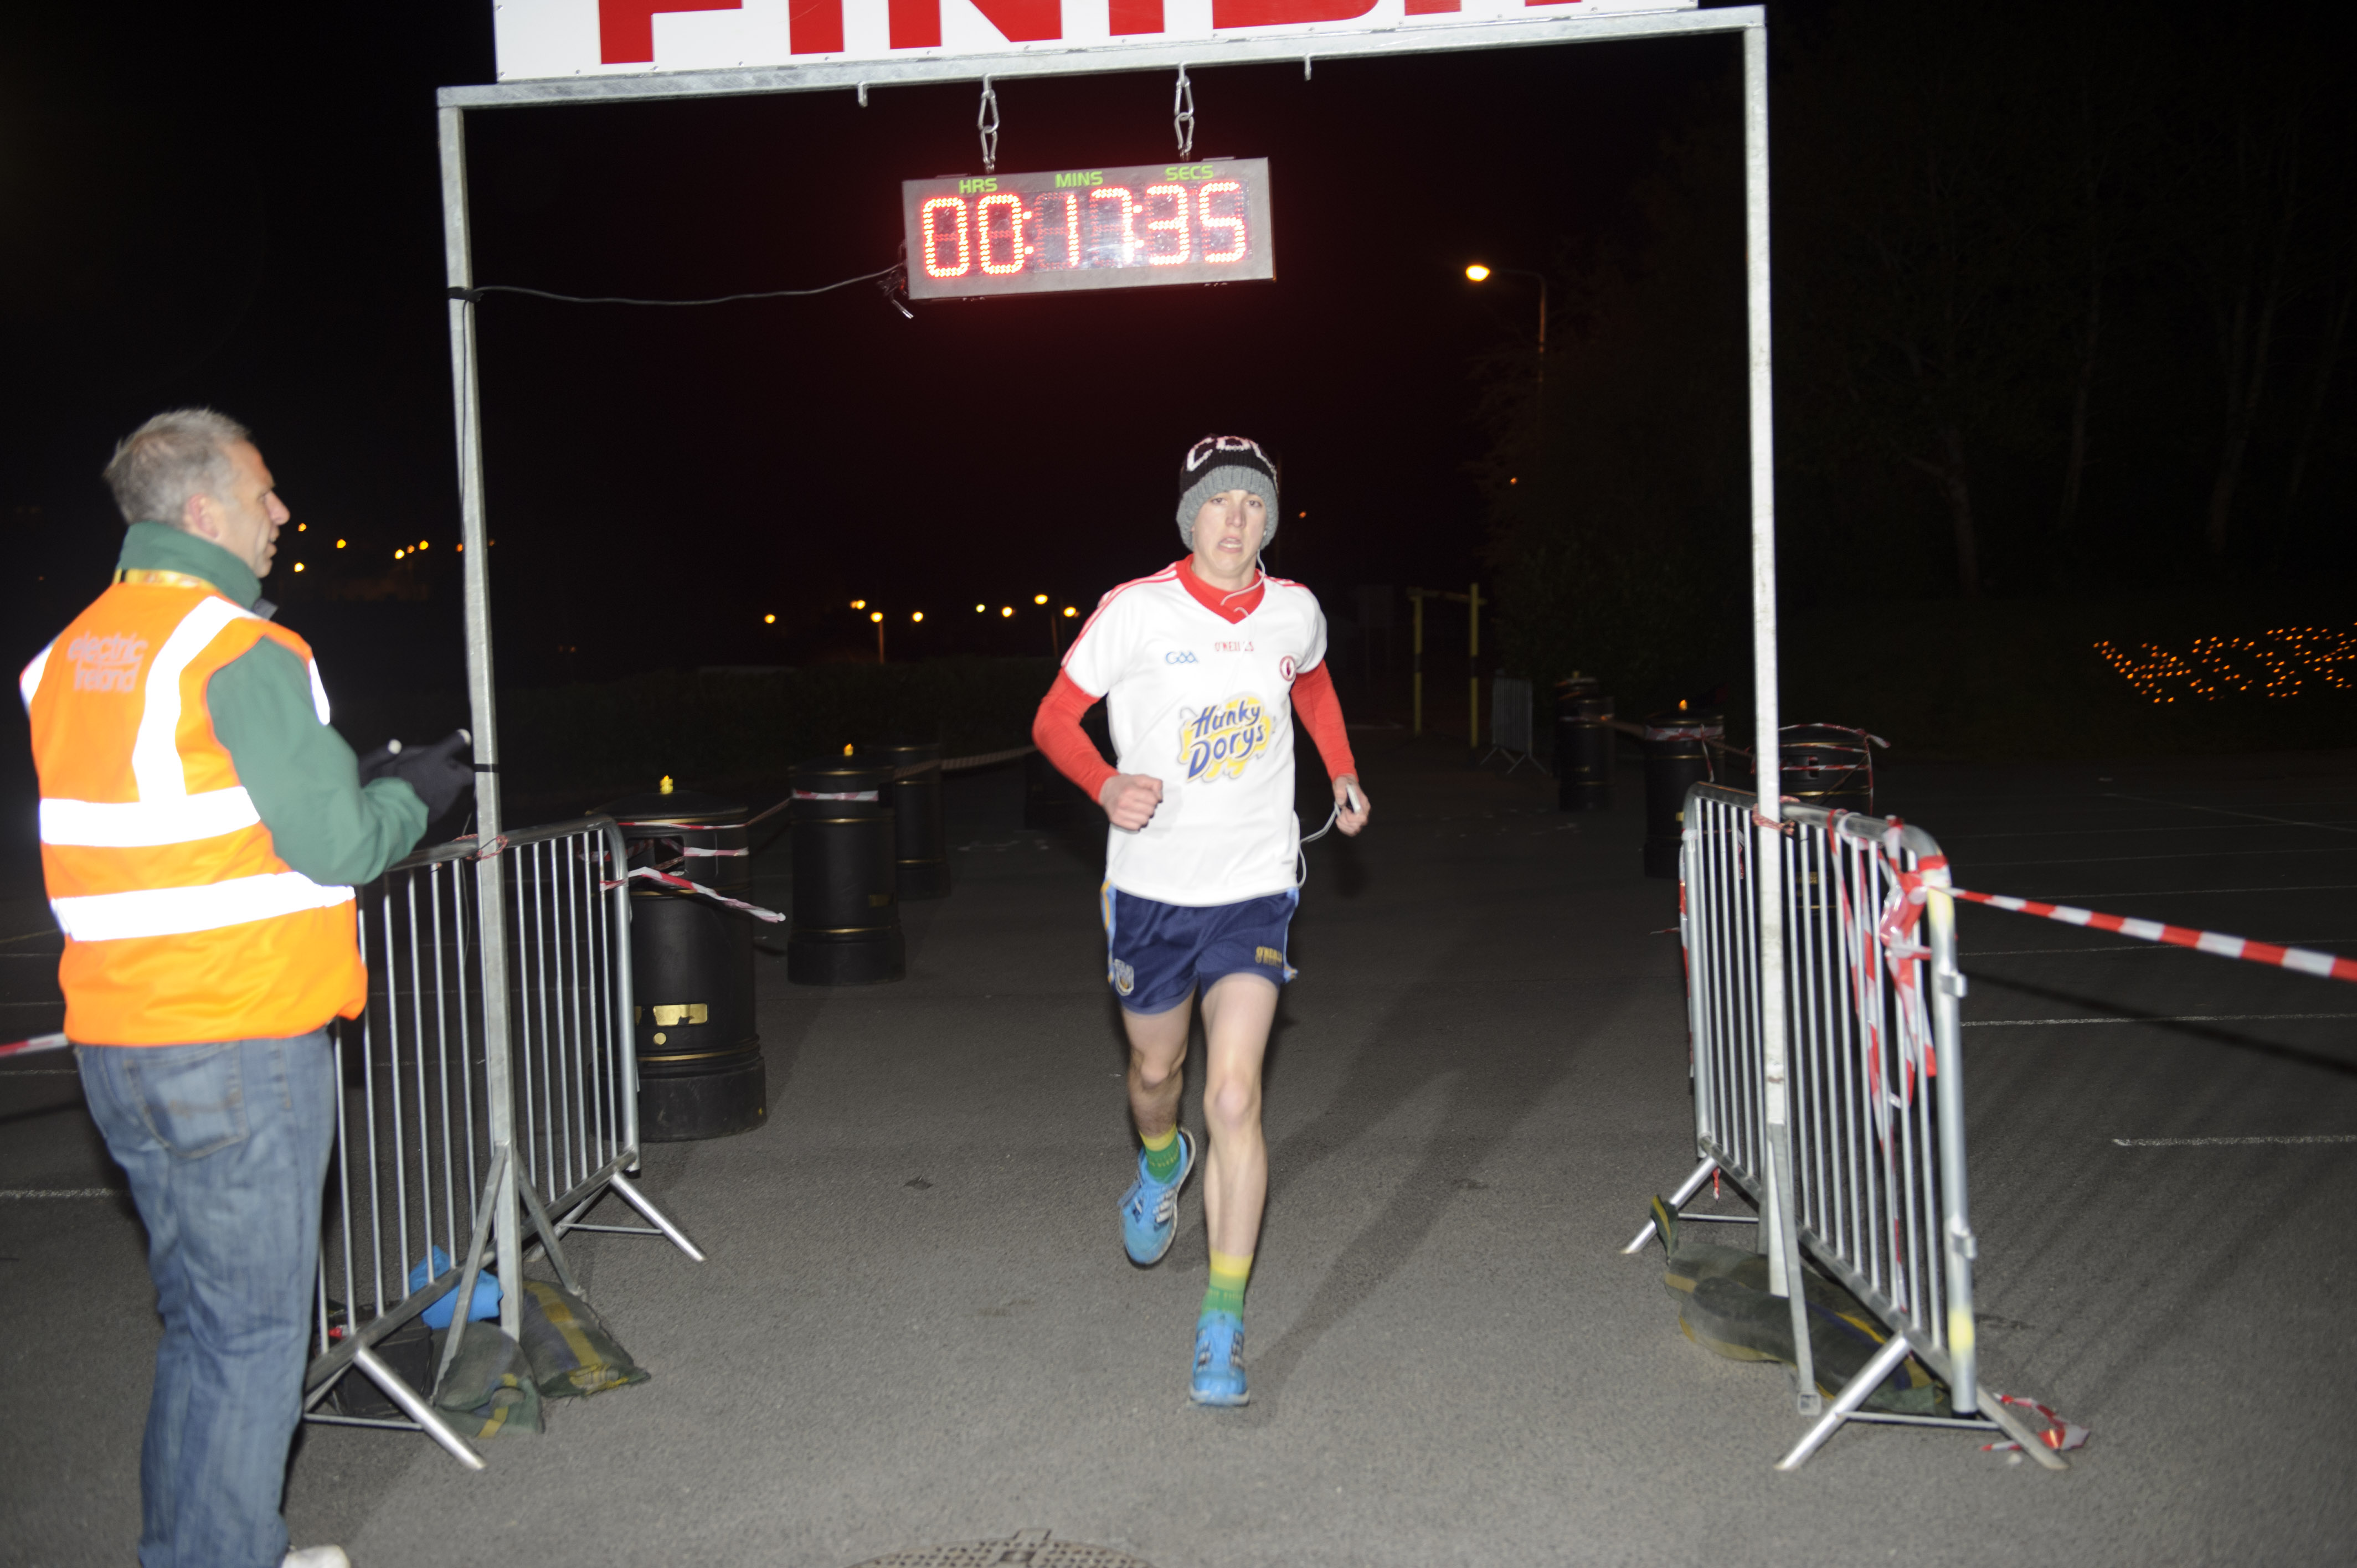 Anthony O'Brien, winner, crossing the finish-line of the Darkness Into Light 5k. ©Rory Geary/The Northern Standard